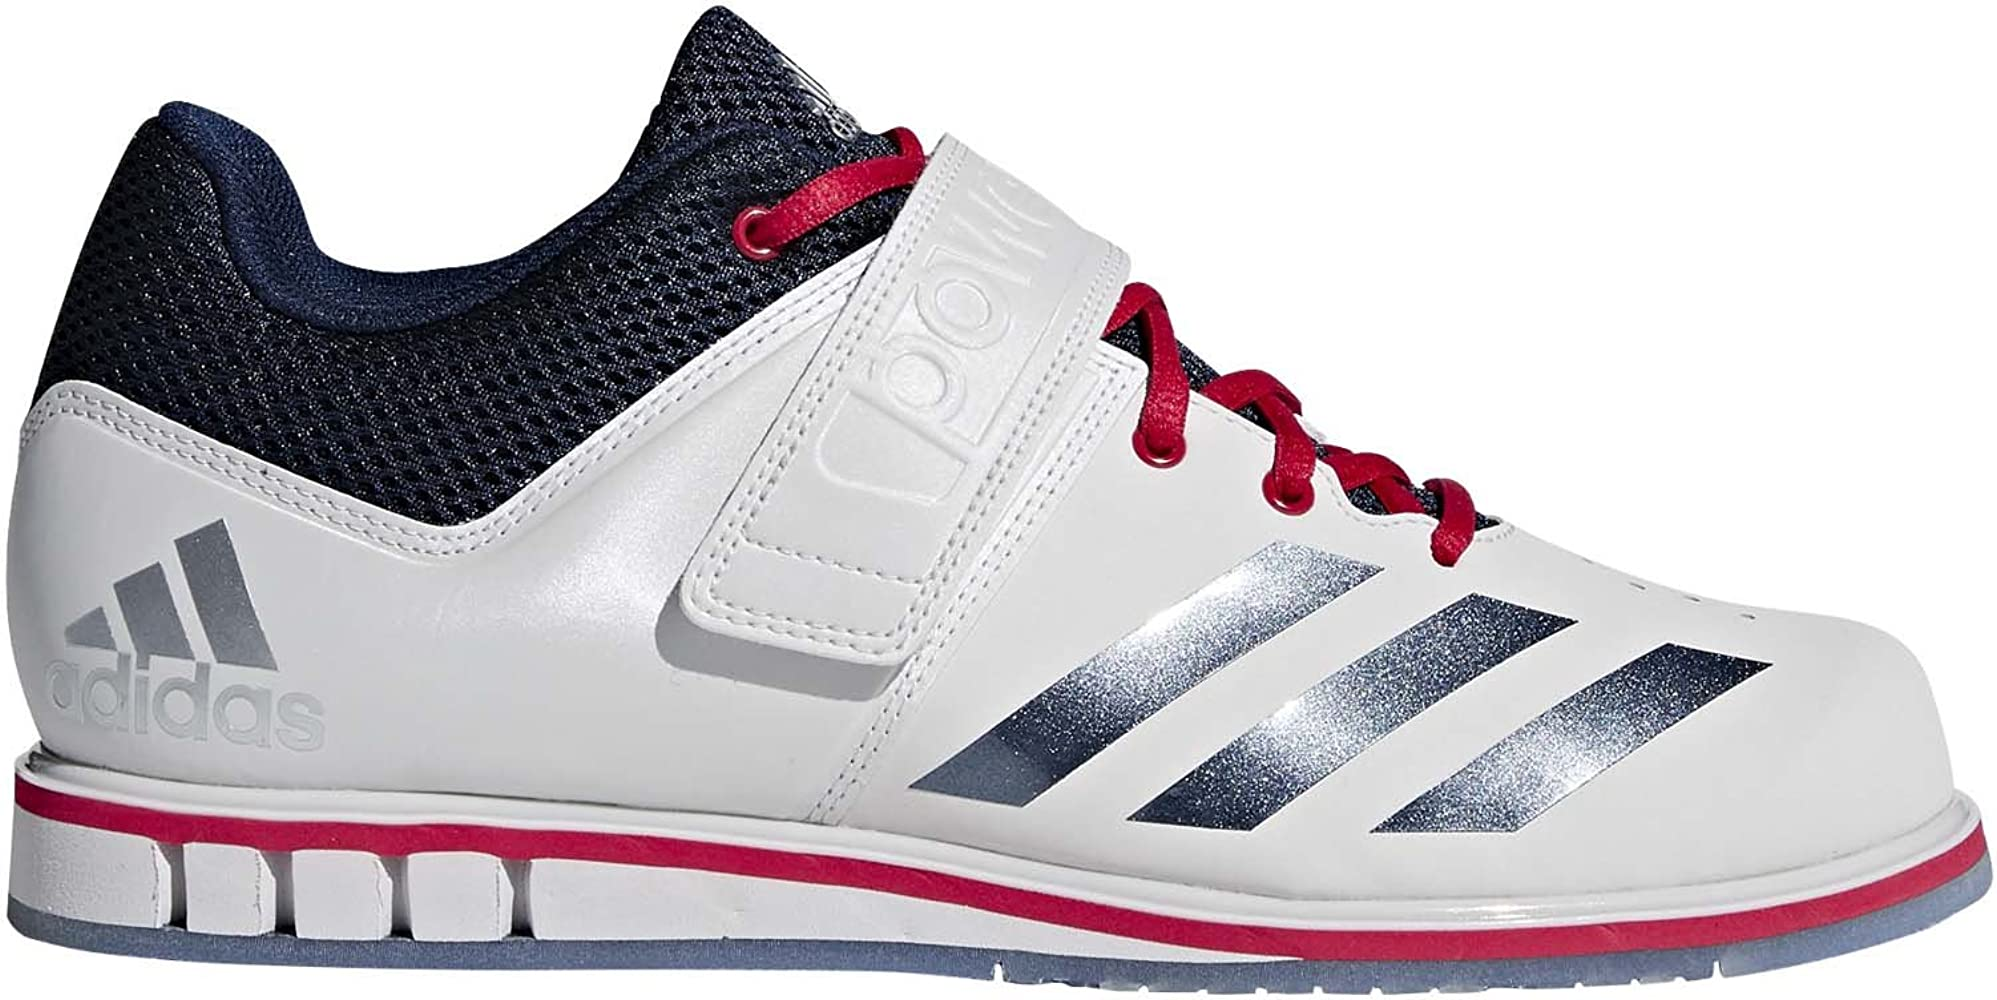 adidas Powerlift 3.1 Stars and Stripes